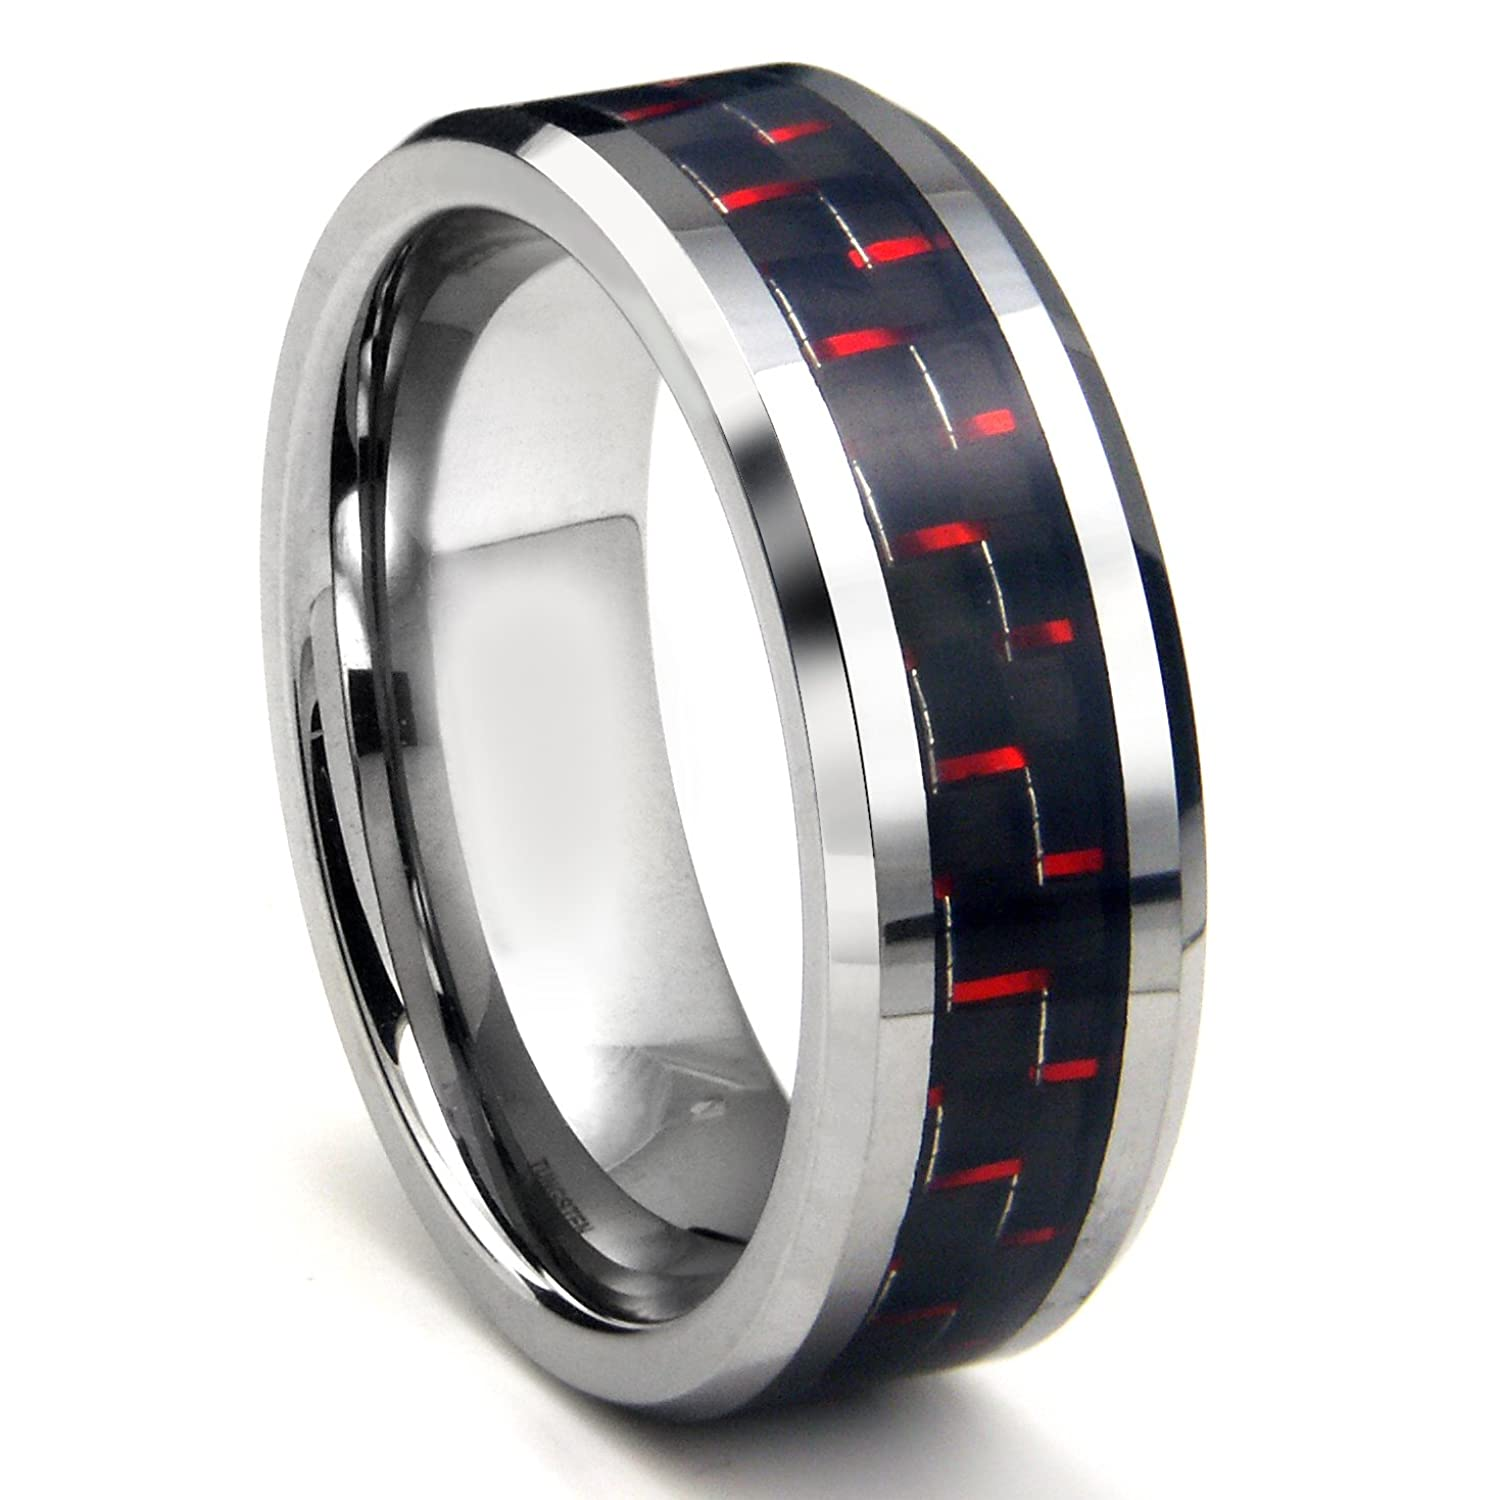 RED & BLACK Carbon Fiber Inlay 8MM Men s Tungsten Metal Ring